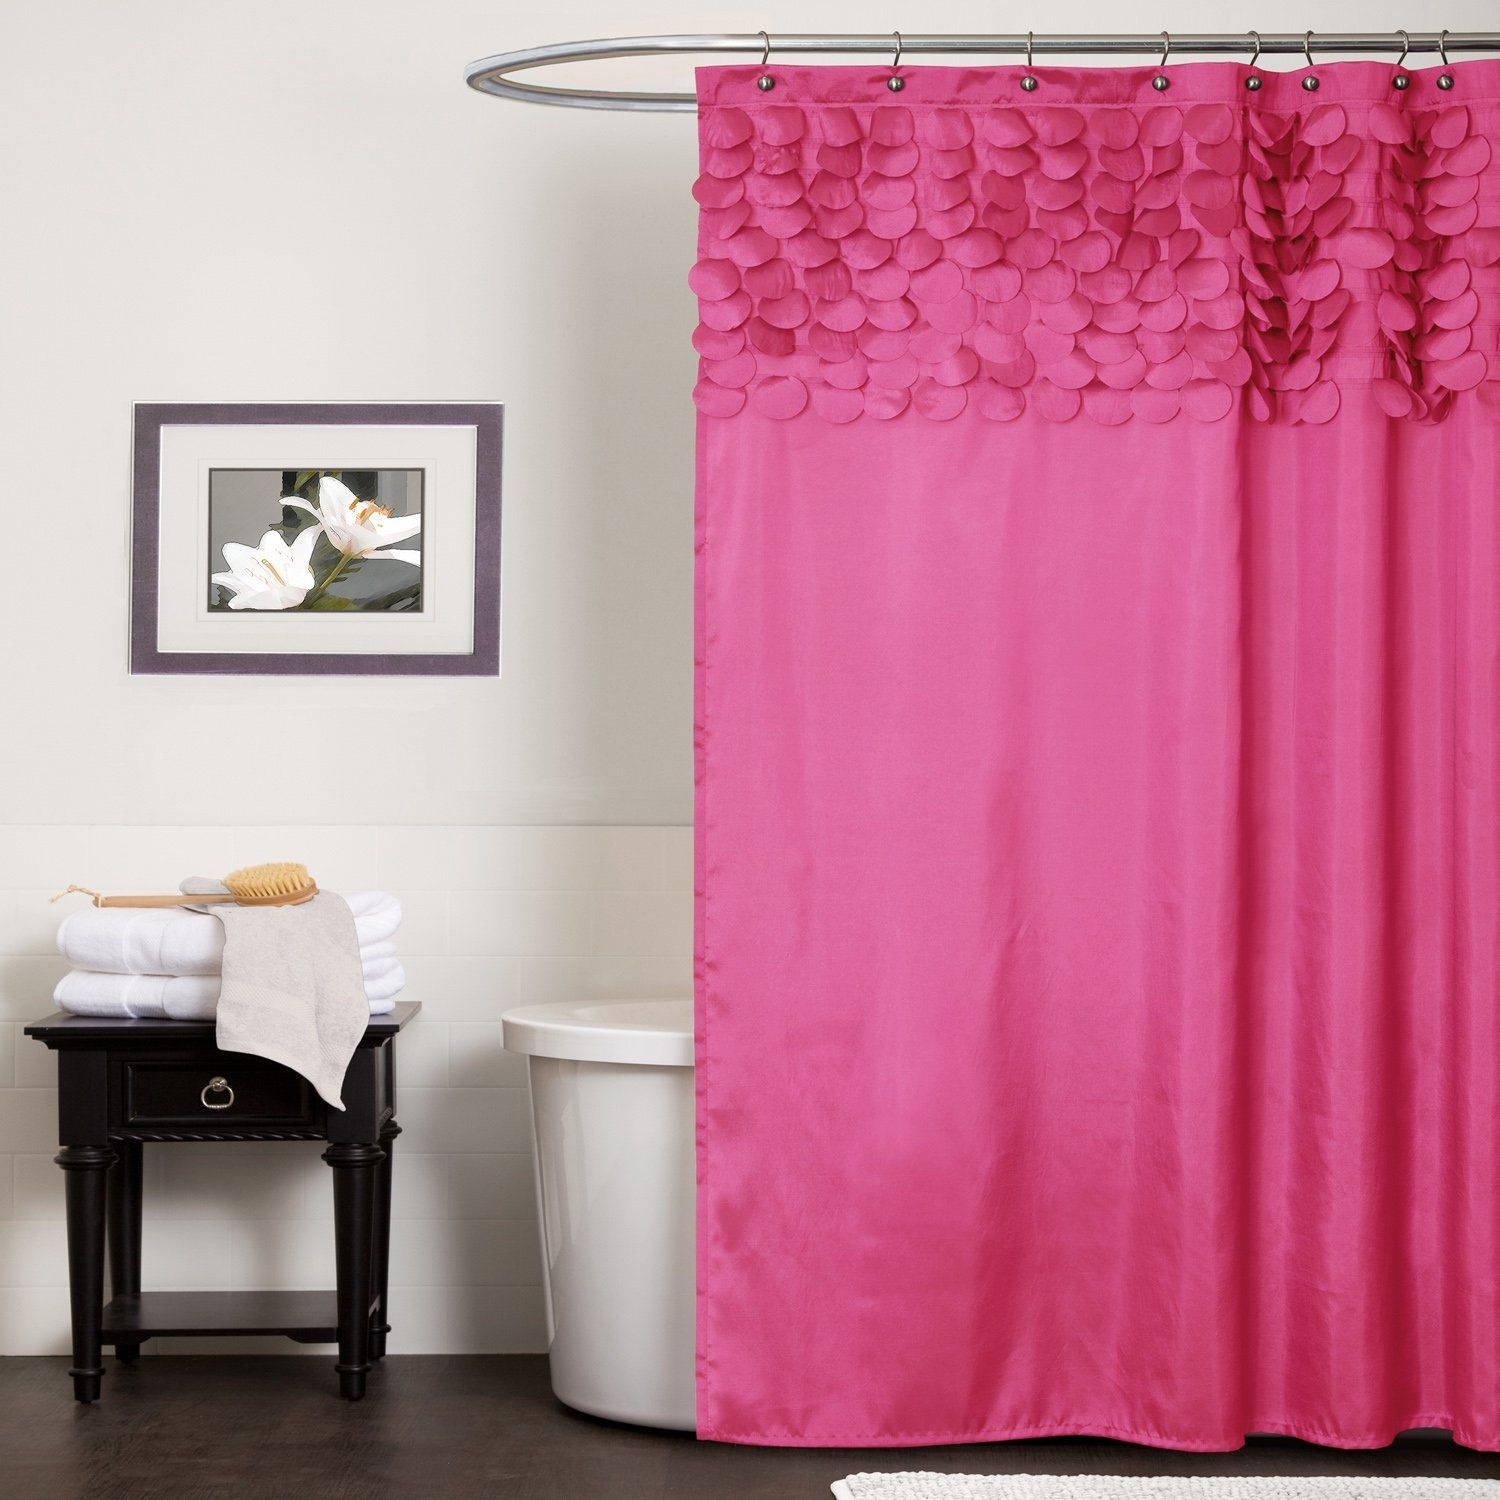 Hot pink shower curtain 1000 images about curtains from on pinterest pink orange fuschia ombre